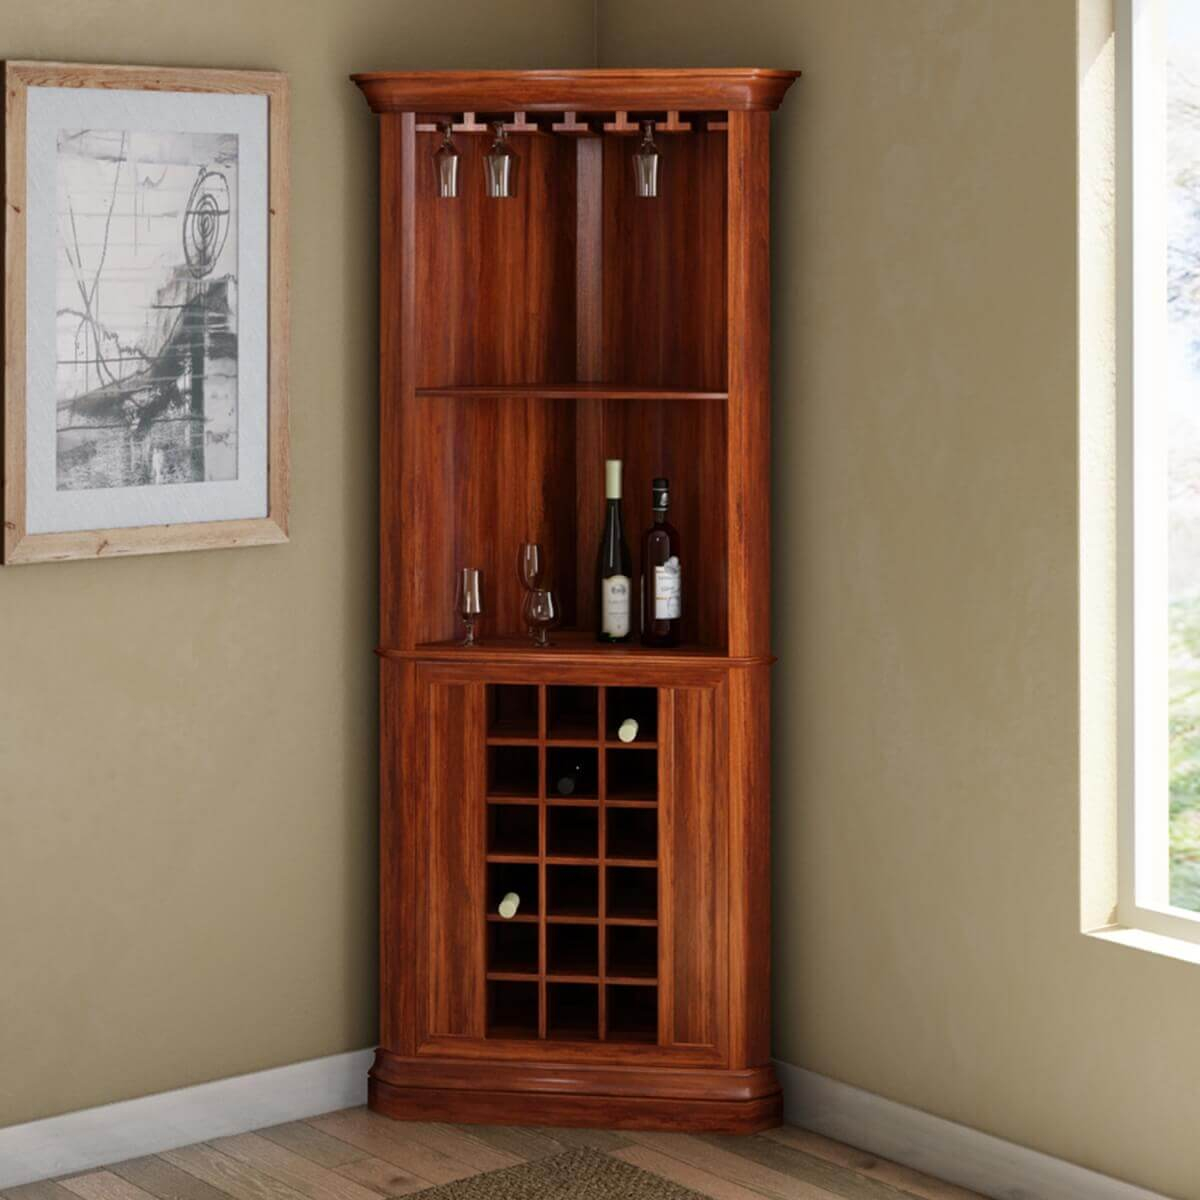 Louis Rustic Solid Wood Corner Bar Cabinet with regard to size 1200 X 1200